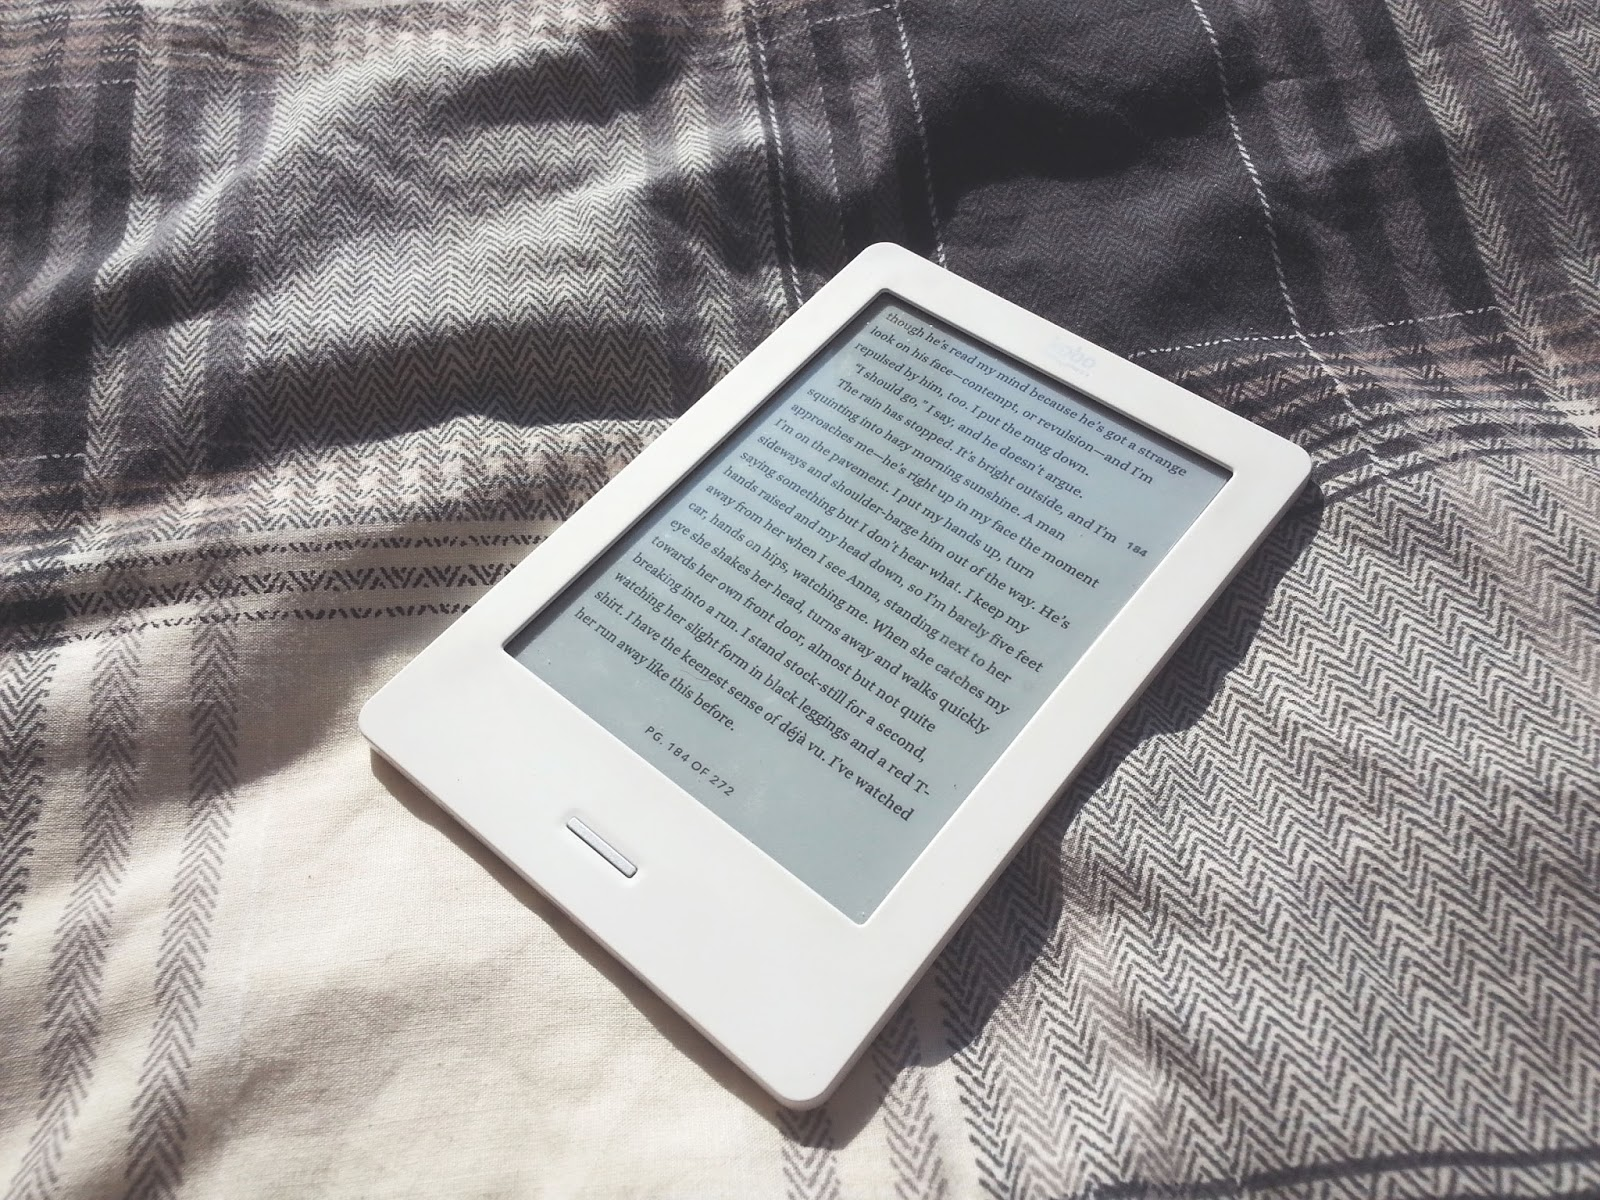 De Kobo Touch E-reader